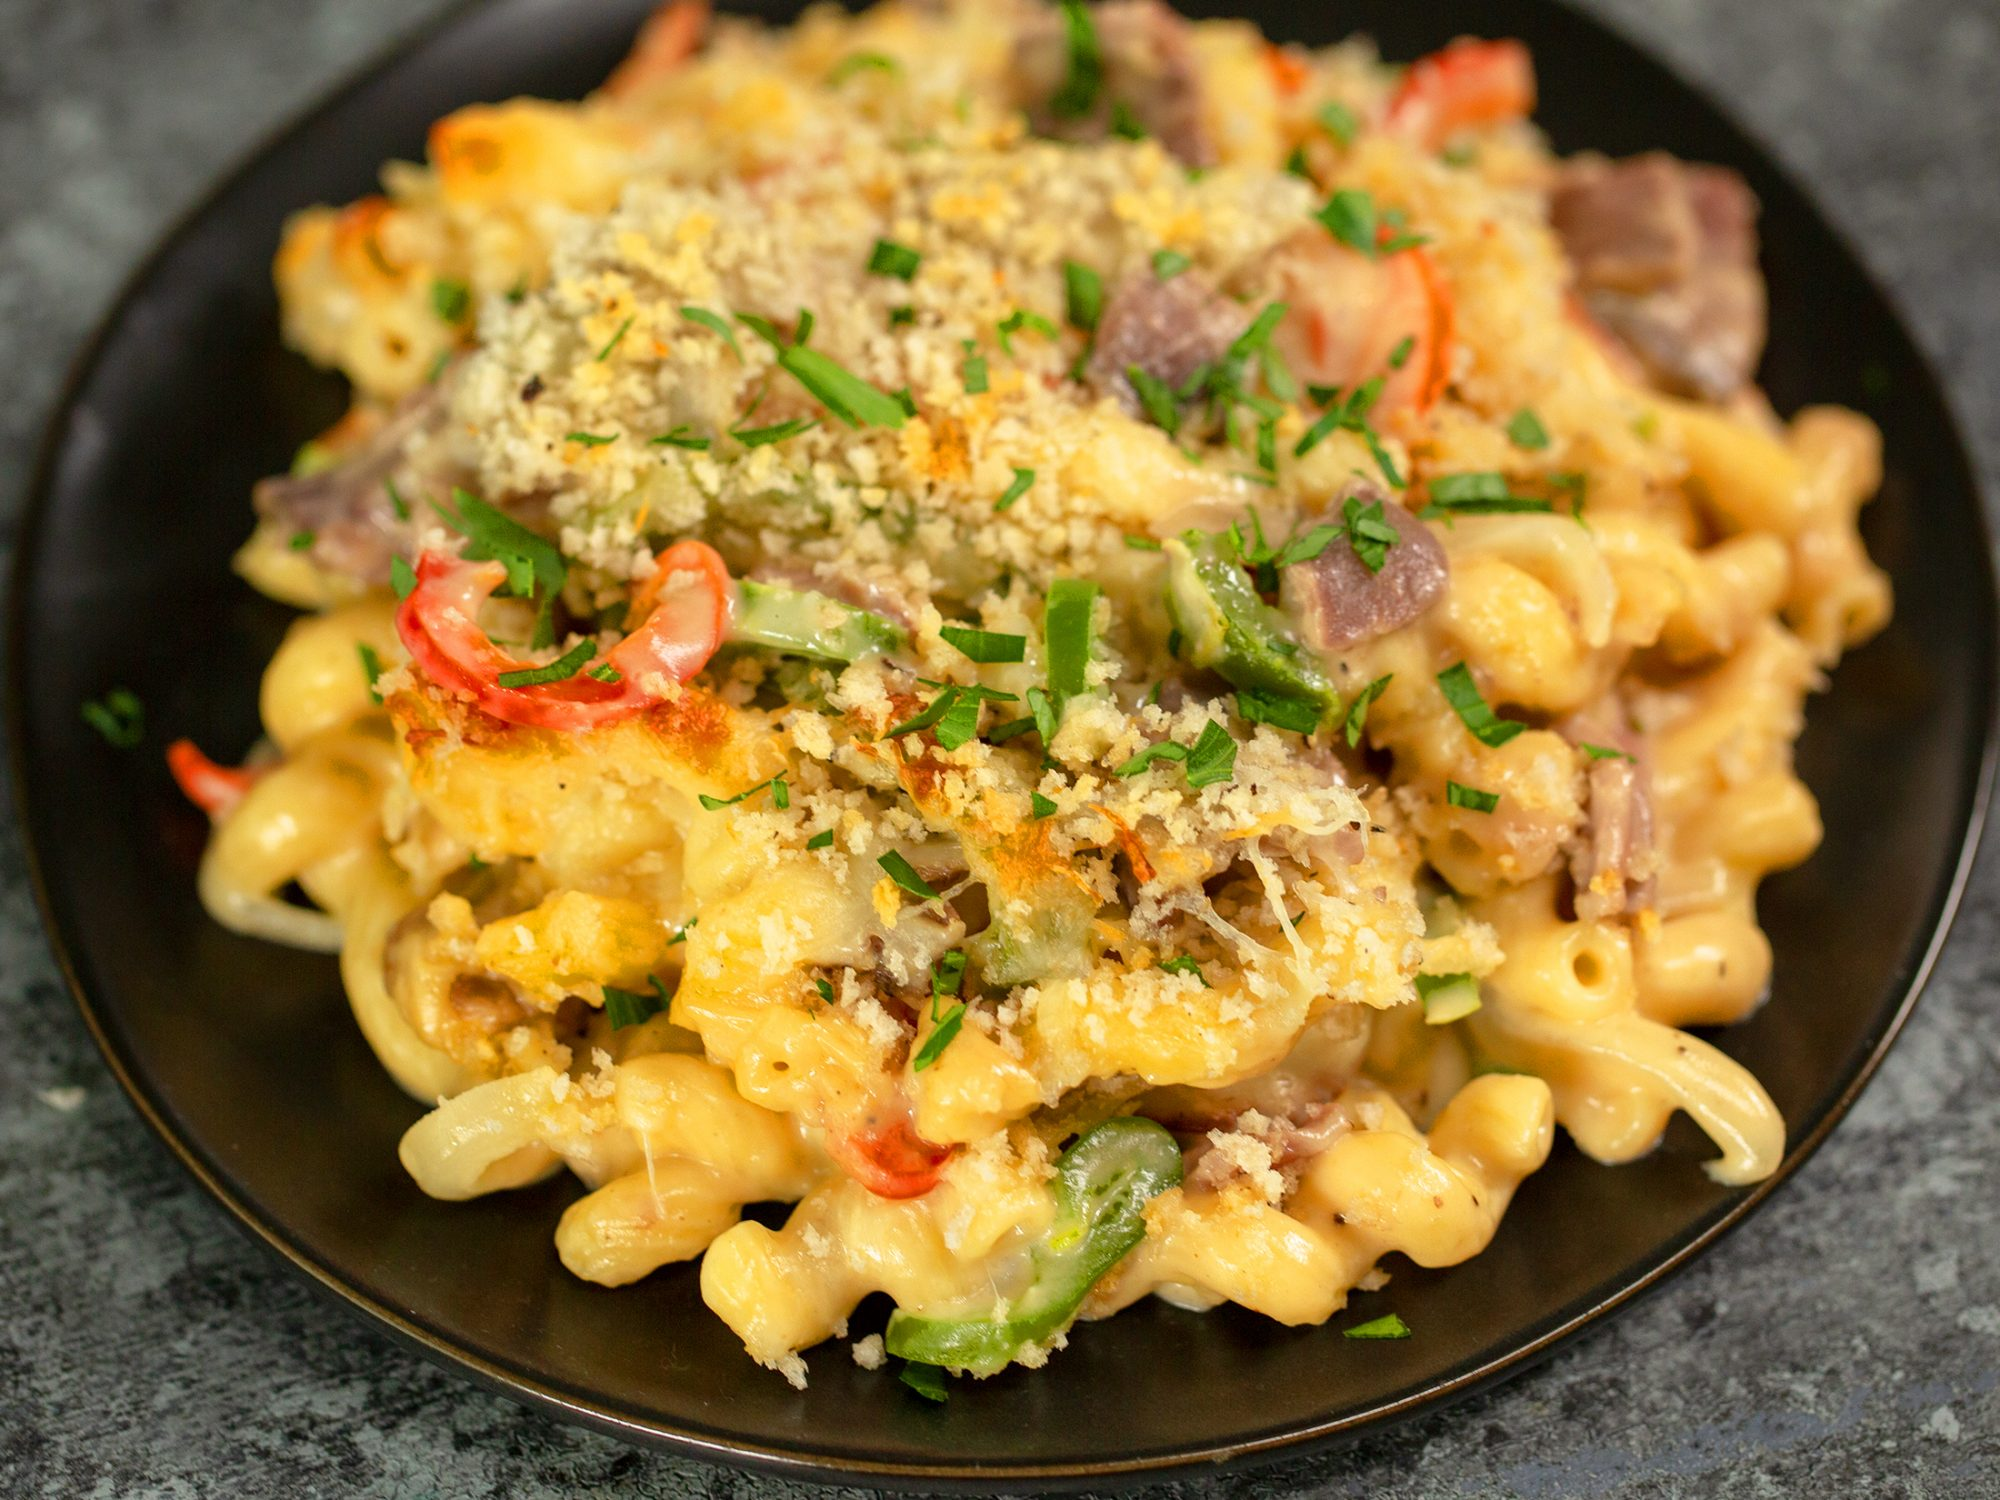 Philly Mac-And-Cheese Steak image